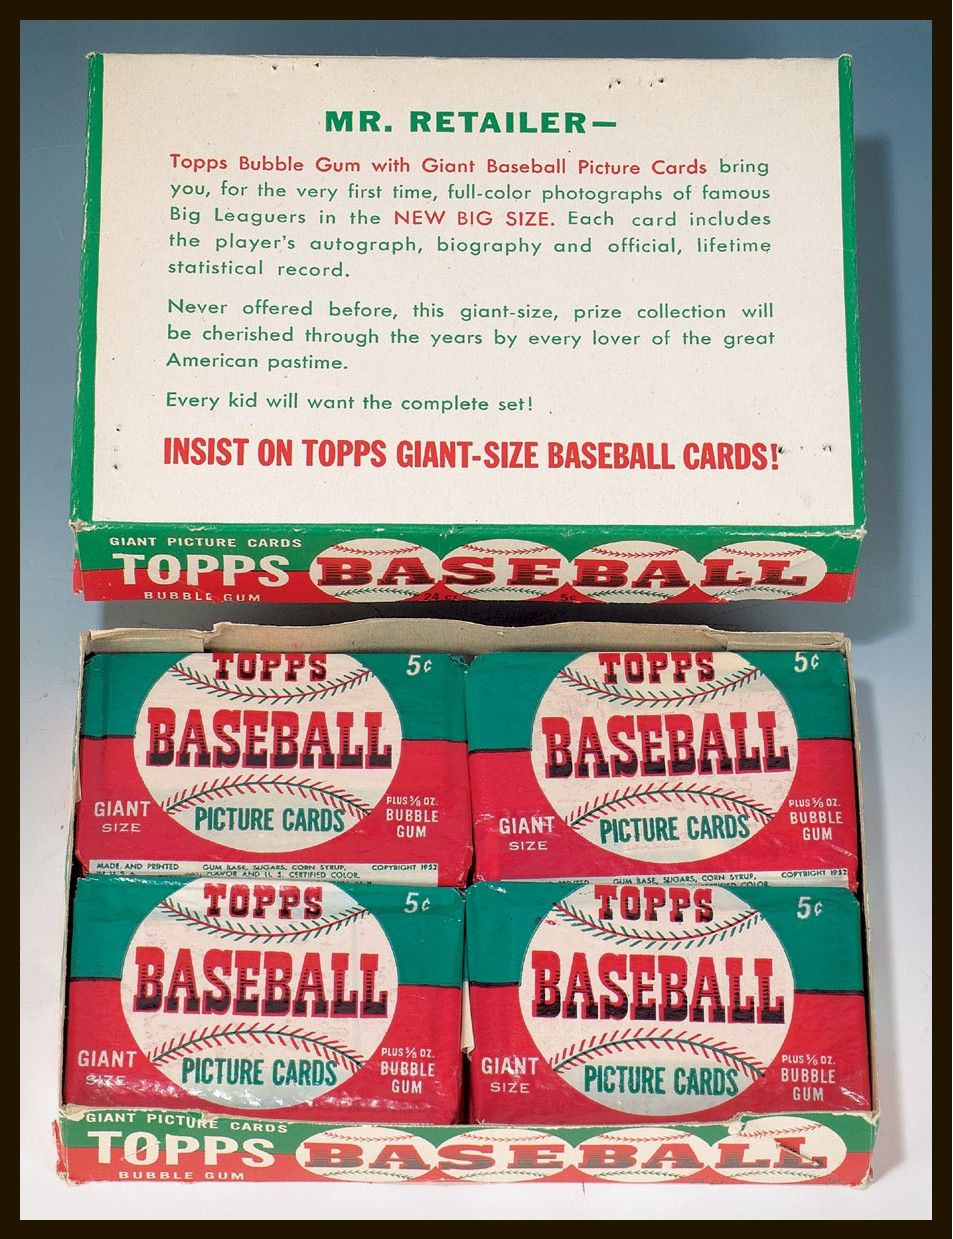 1952 Topps Baseball Five Cent Wax Box Complete With Unopened